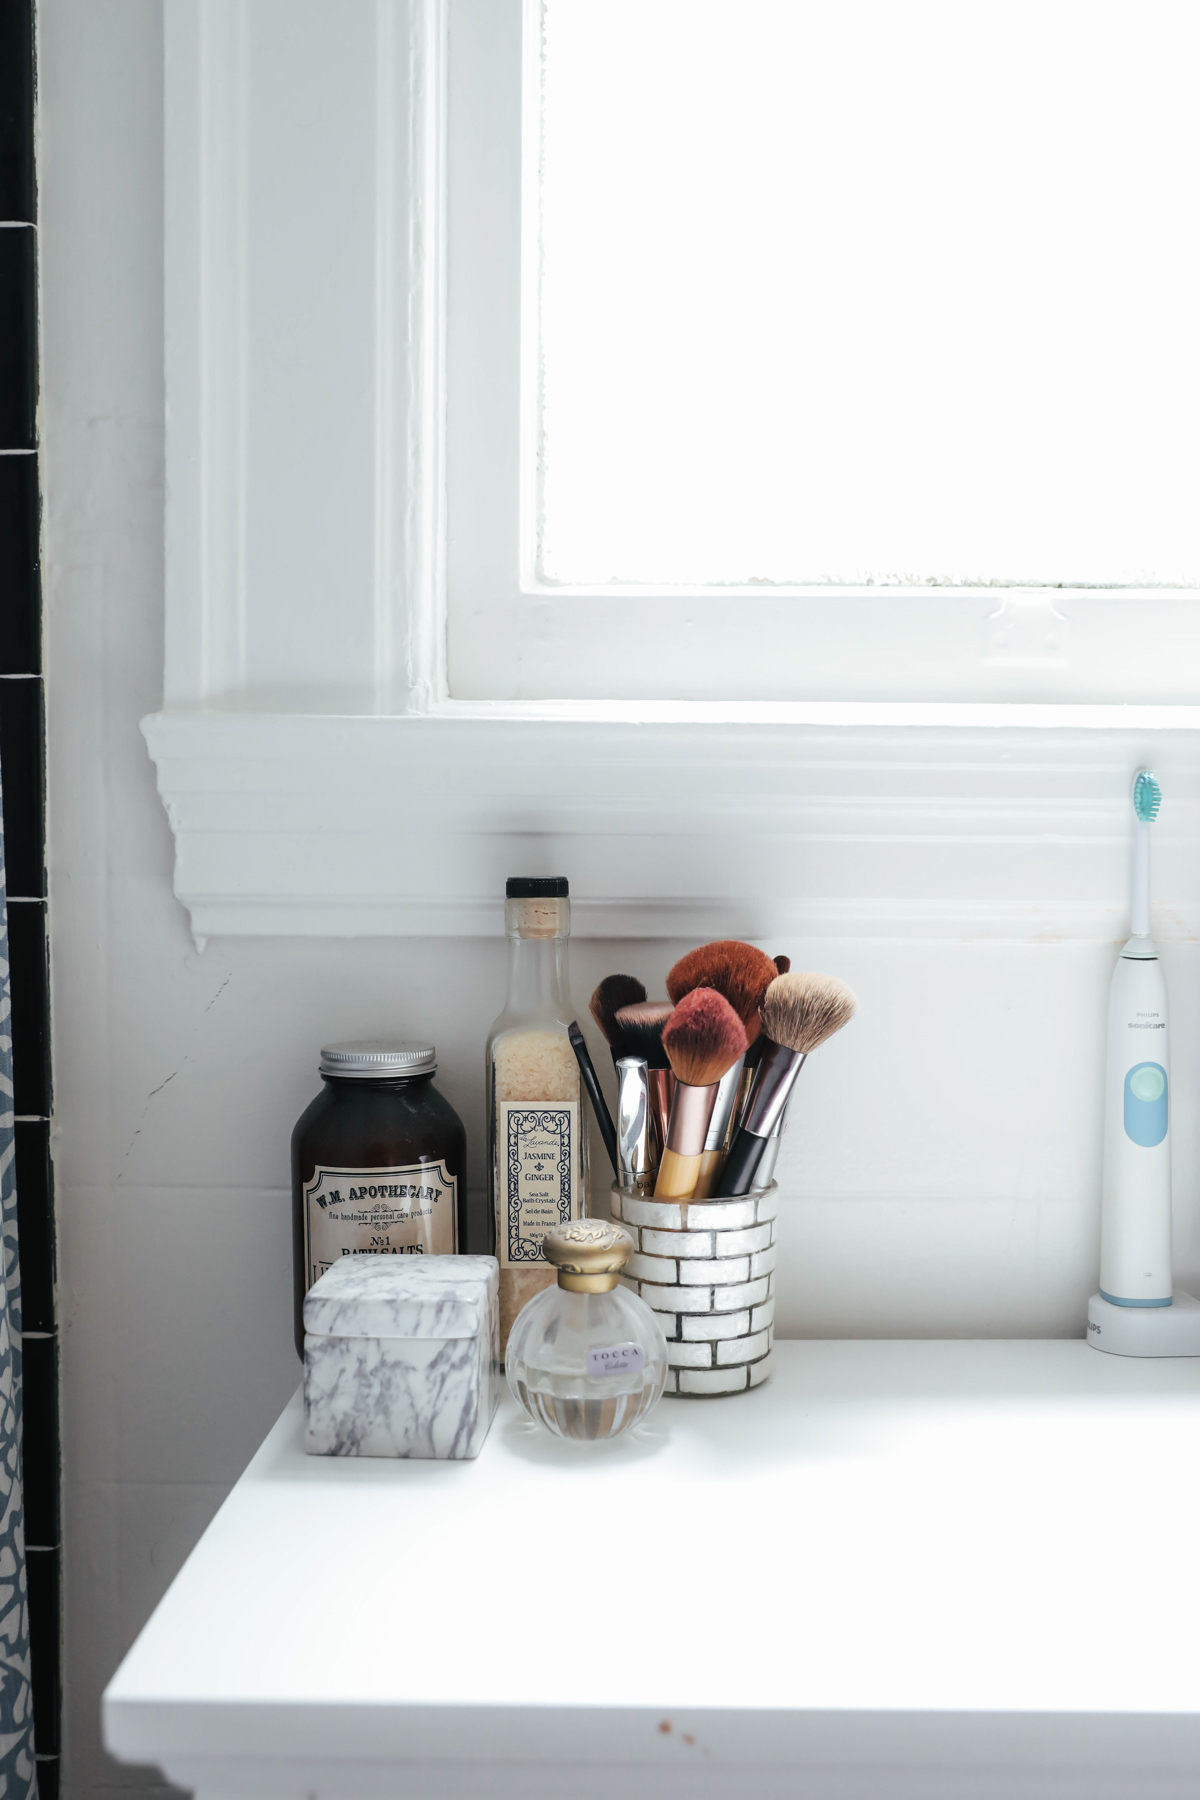 How to keep a clean bathroom - Keep Easy Cleaning Products On Hand